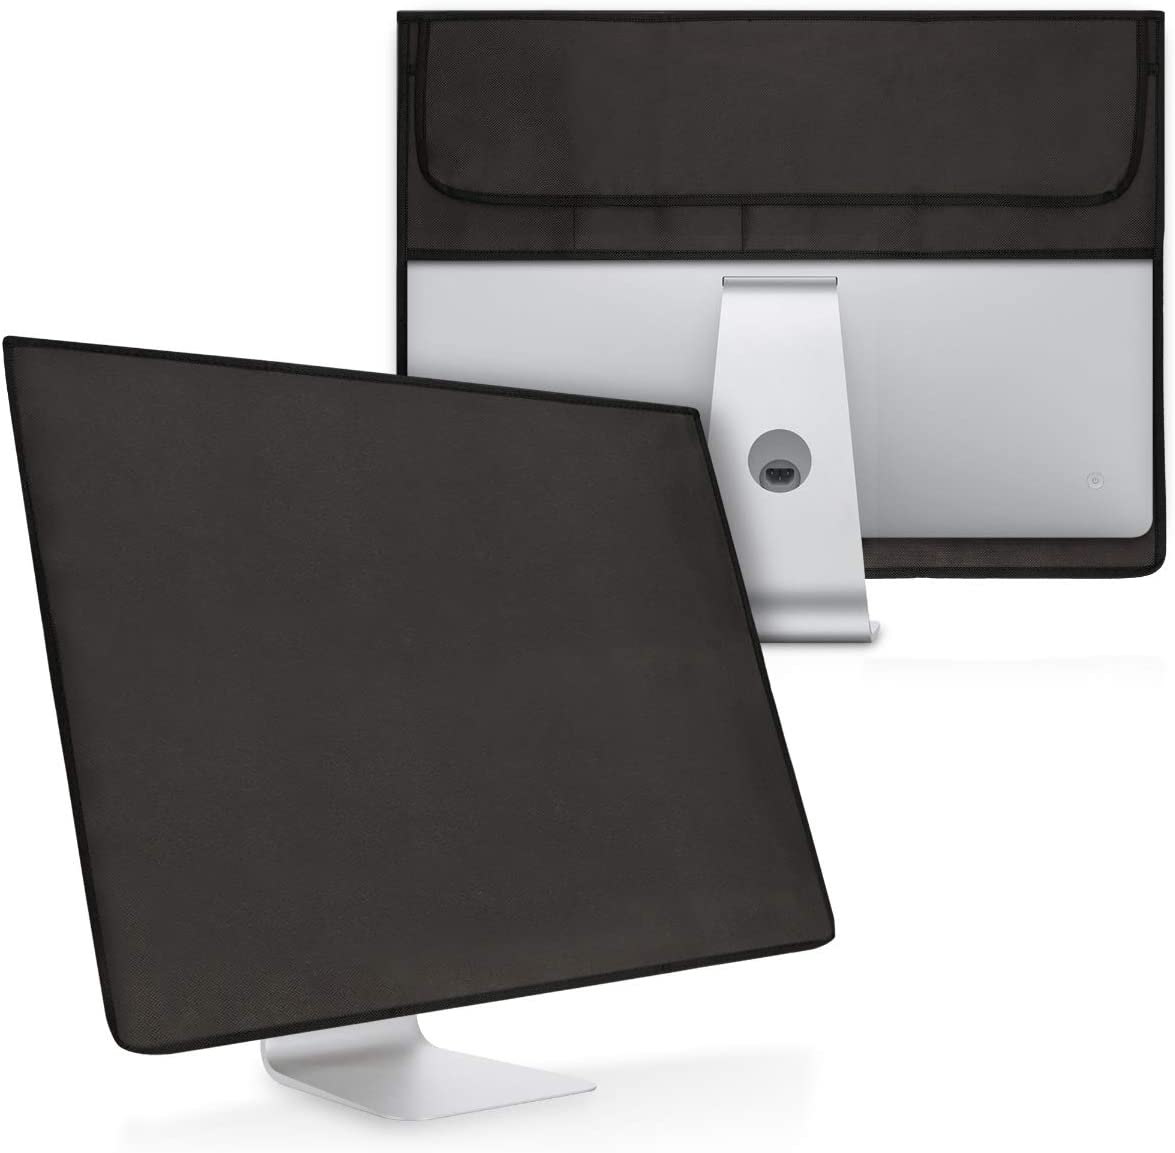 """kwmobile Cover Compatible with Apple iMac 21.5"""" - 4-in-1 Case for Monitor and Accessories - Dark Grey"""